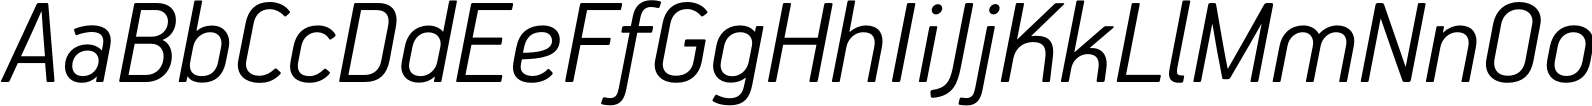 PFHandbookPro LightItalic